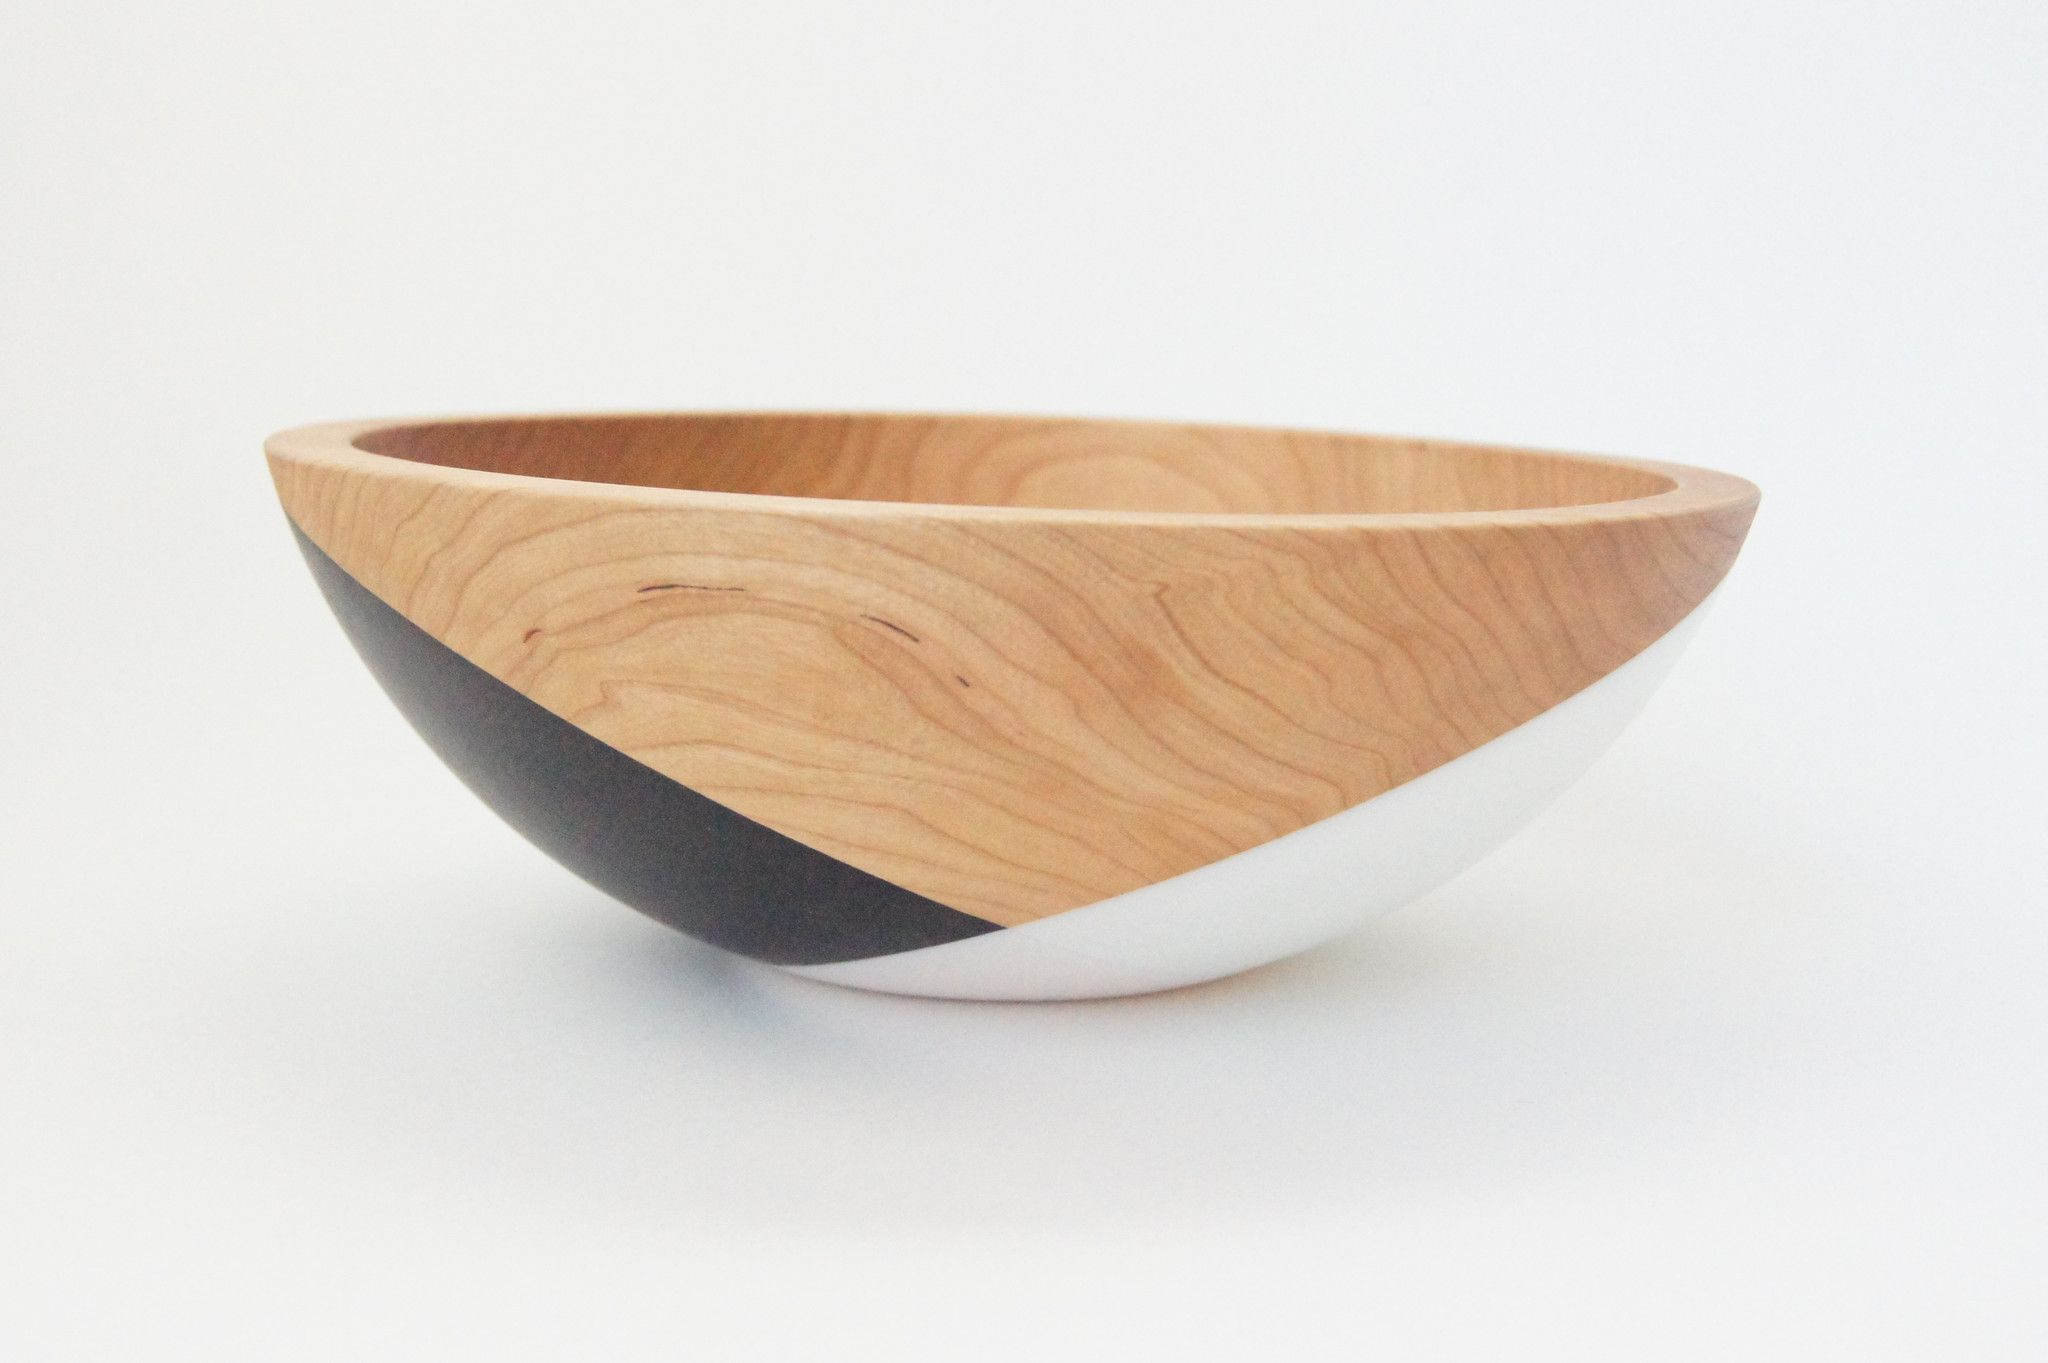 Wooden Cherry bowl by Wind and Willow Home Black and White Crossed pattern